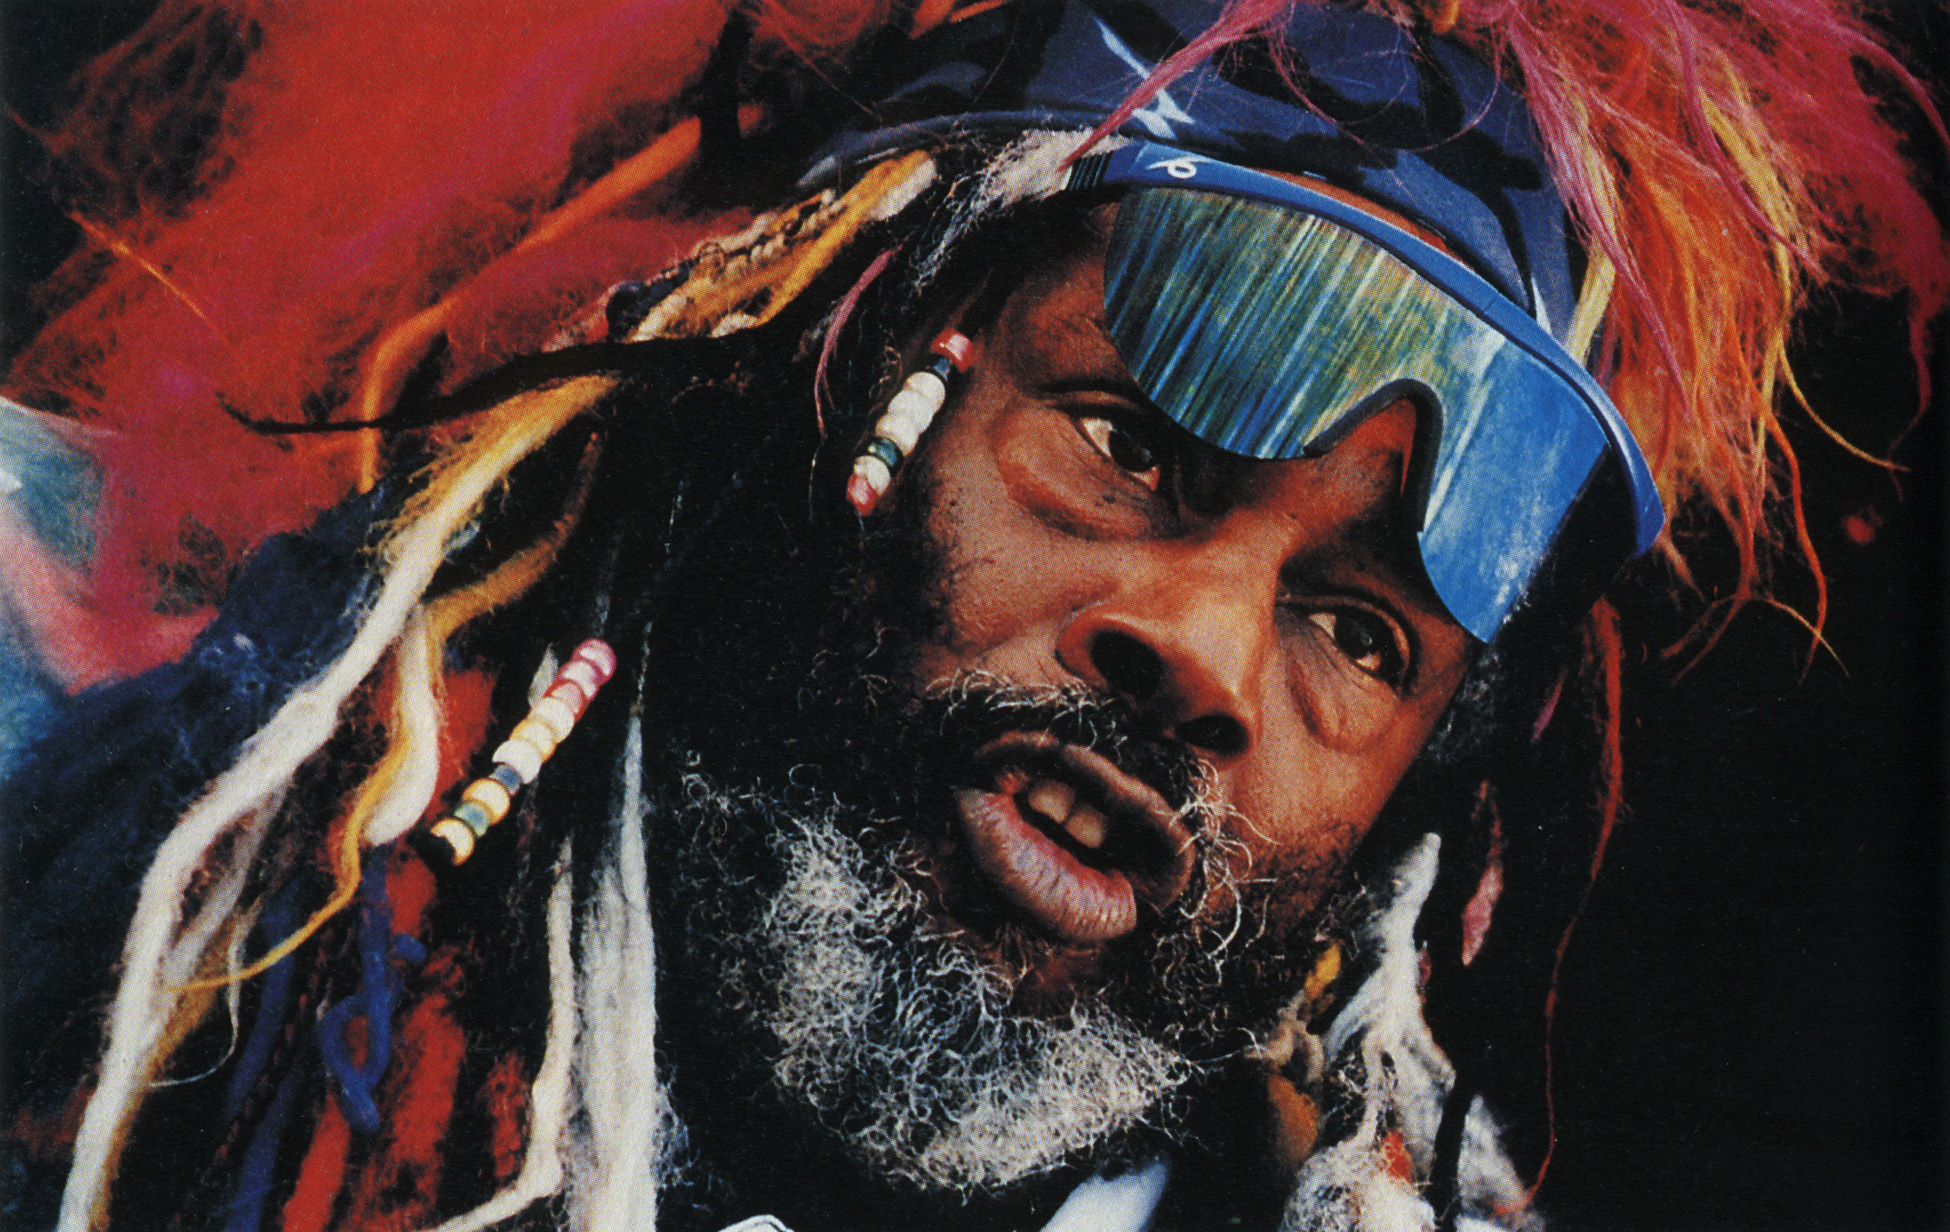 George Clinton - R&B Skeletons In The Closet